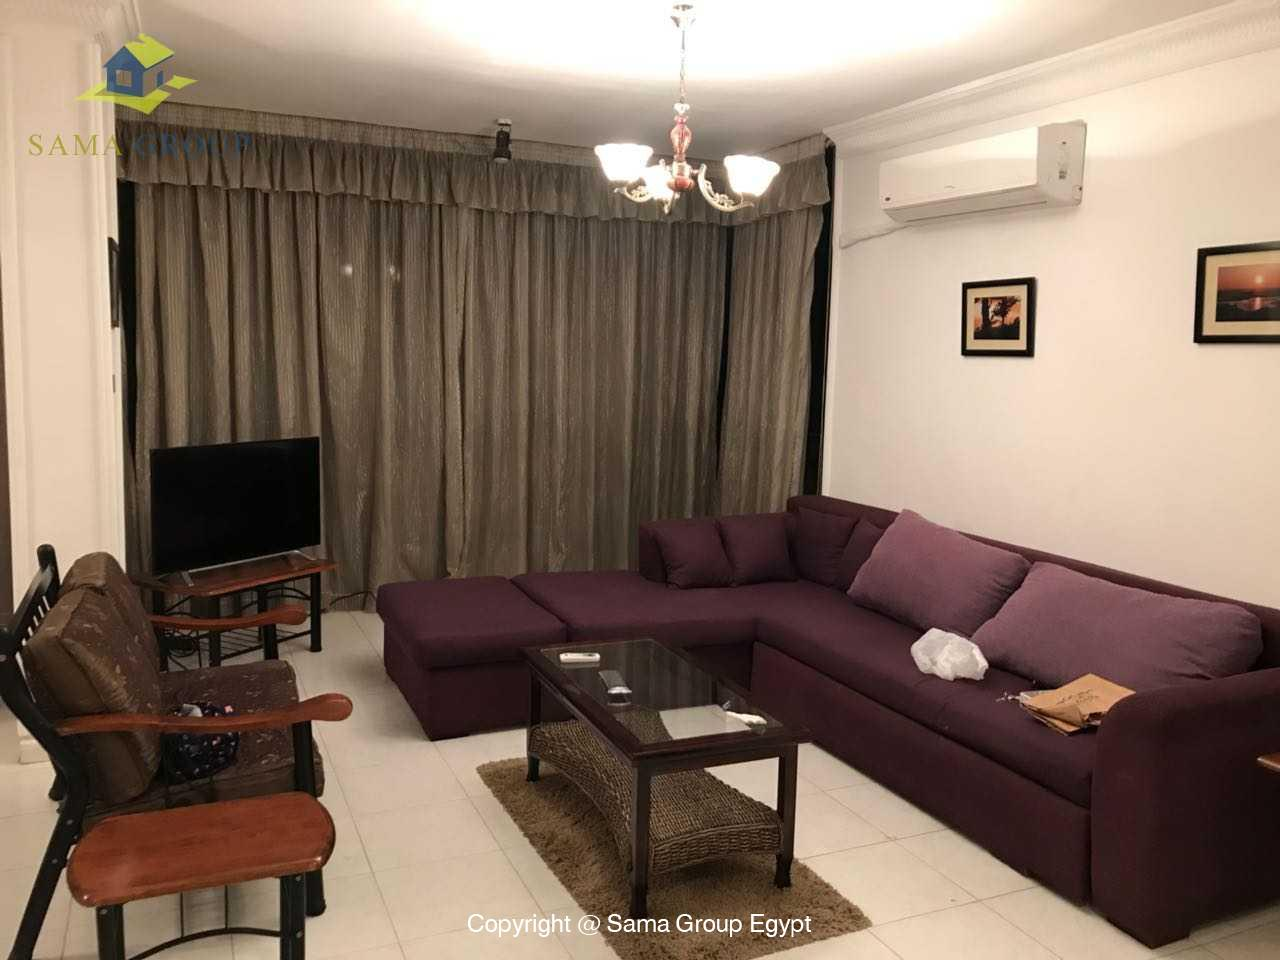 Amazing Apartment For Rent In Maadi Degla,Modern Furnished,Apartment NO #1